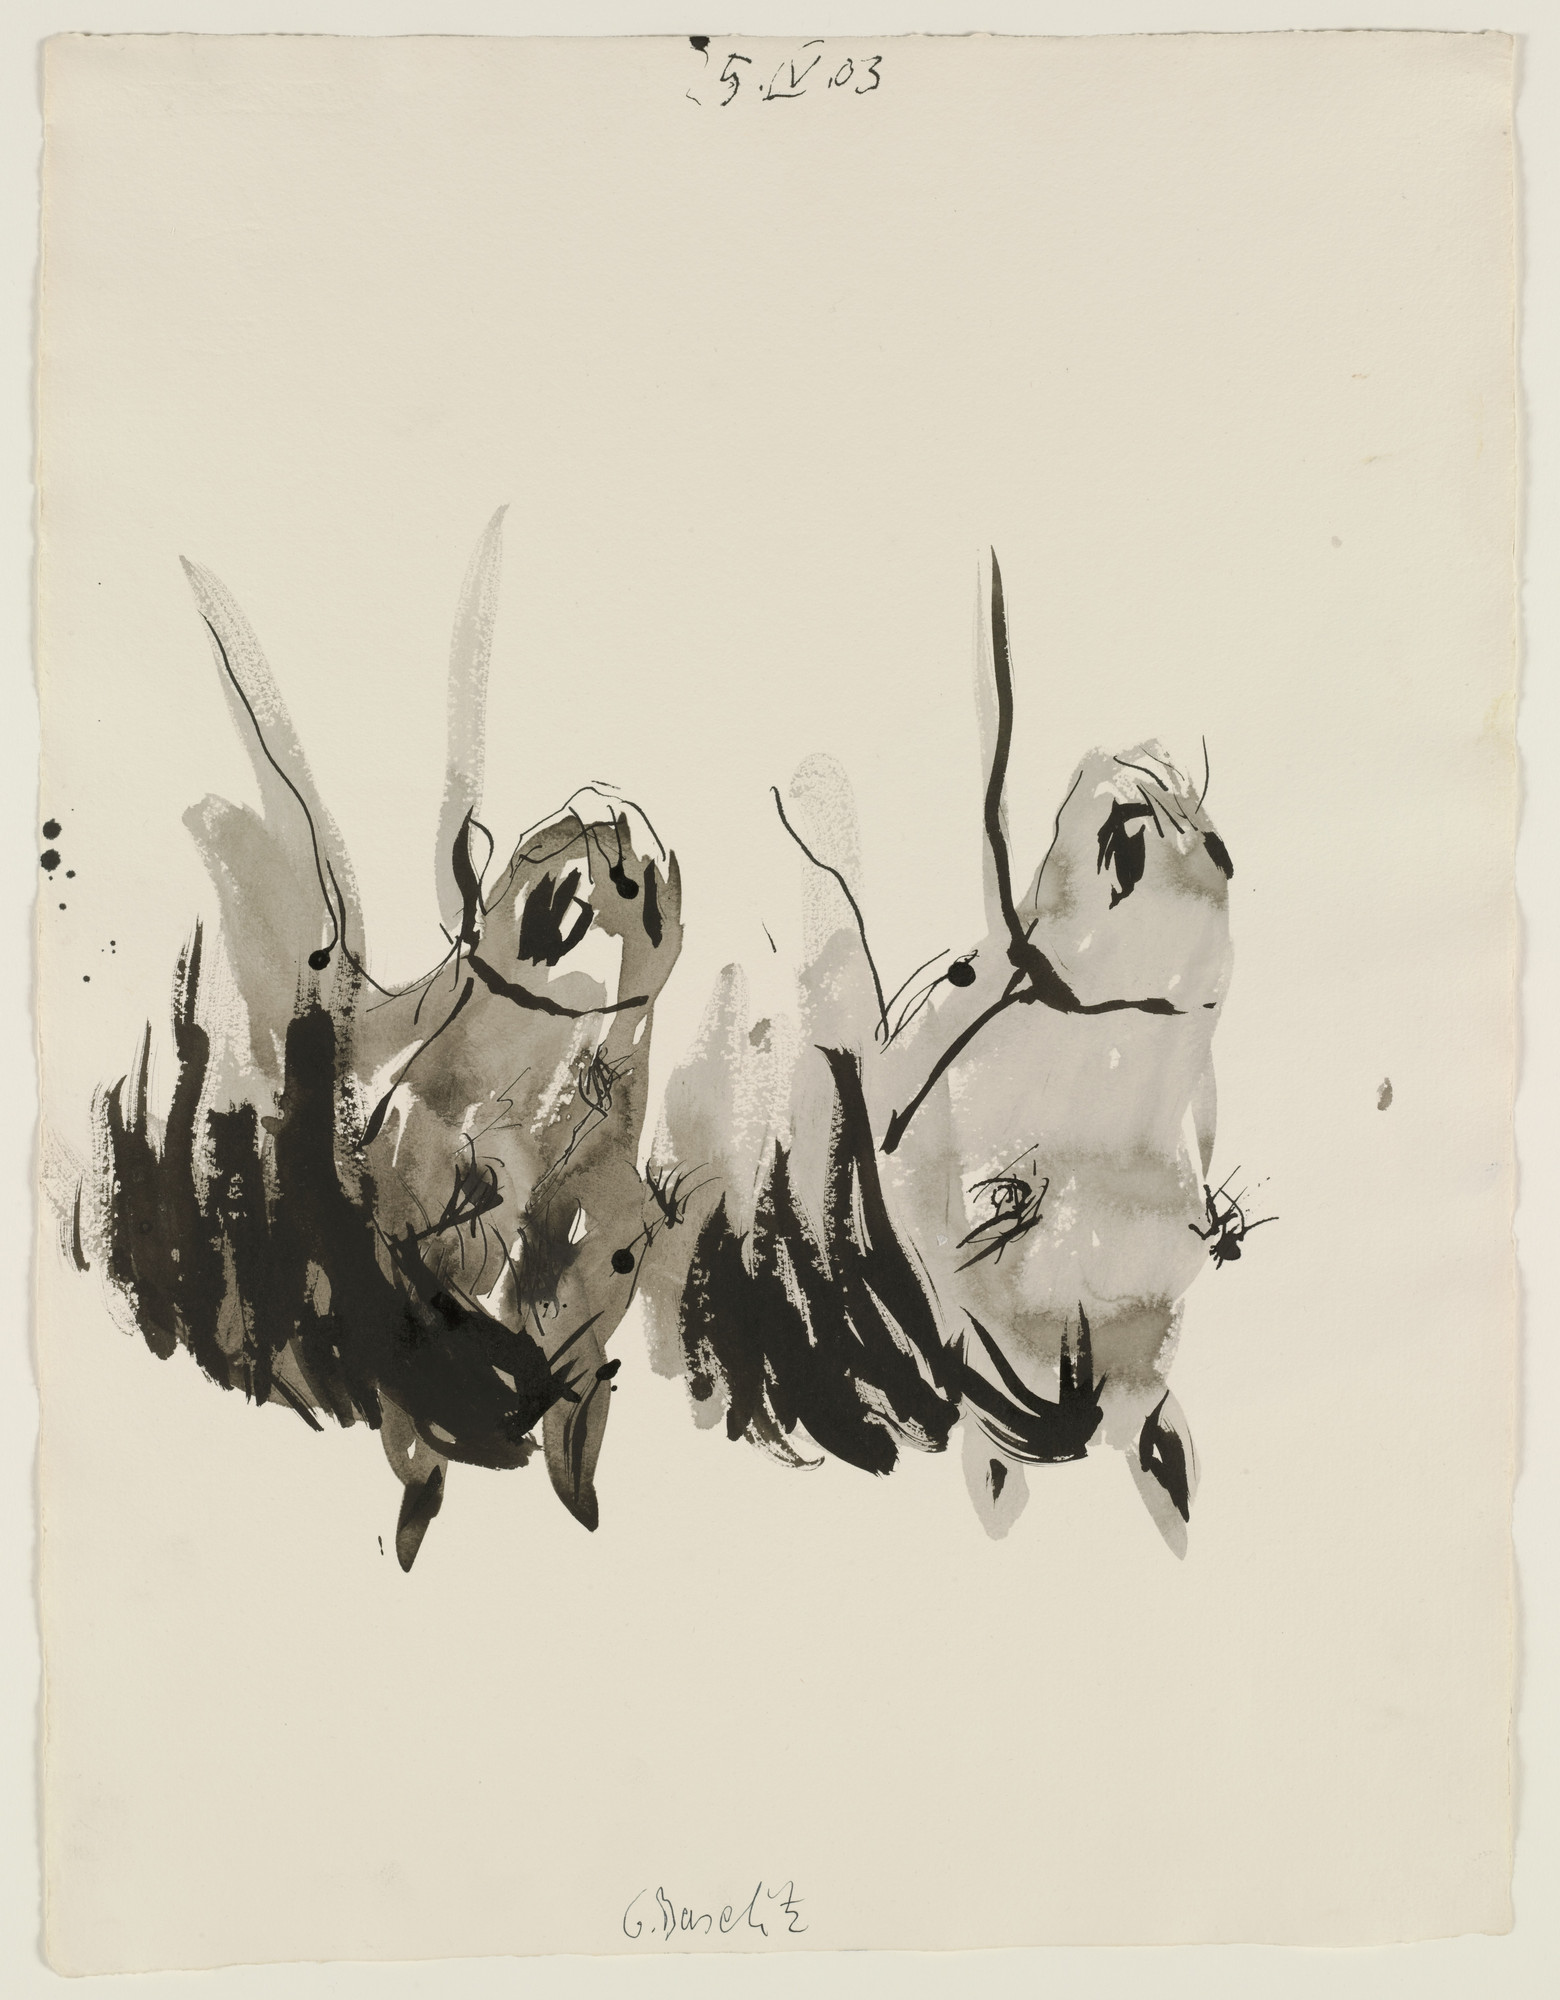 Georg Baselitz. Untitled. 2003